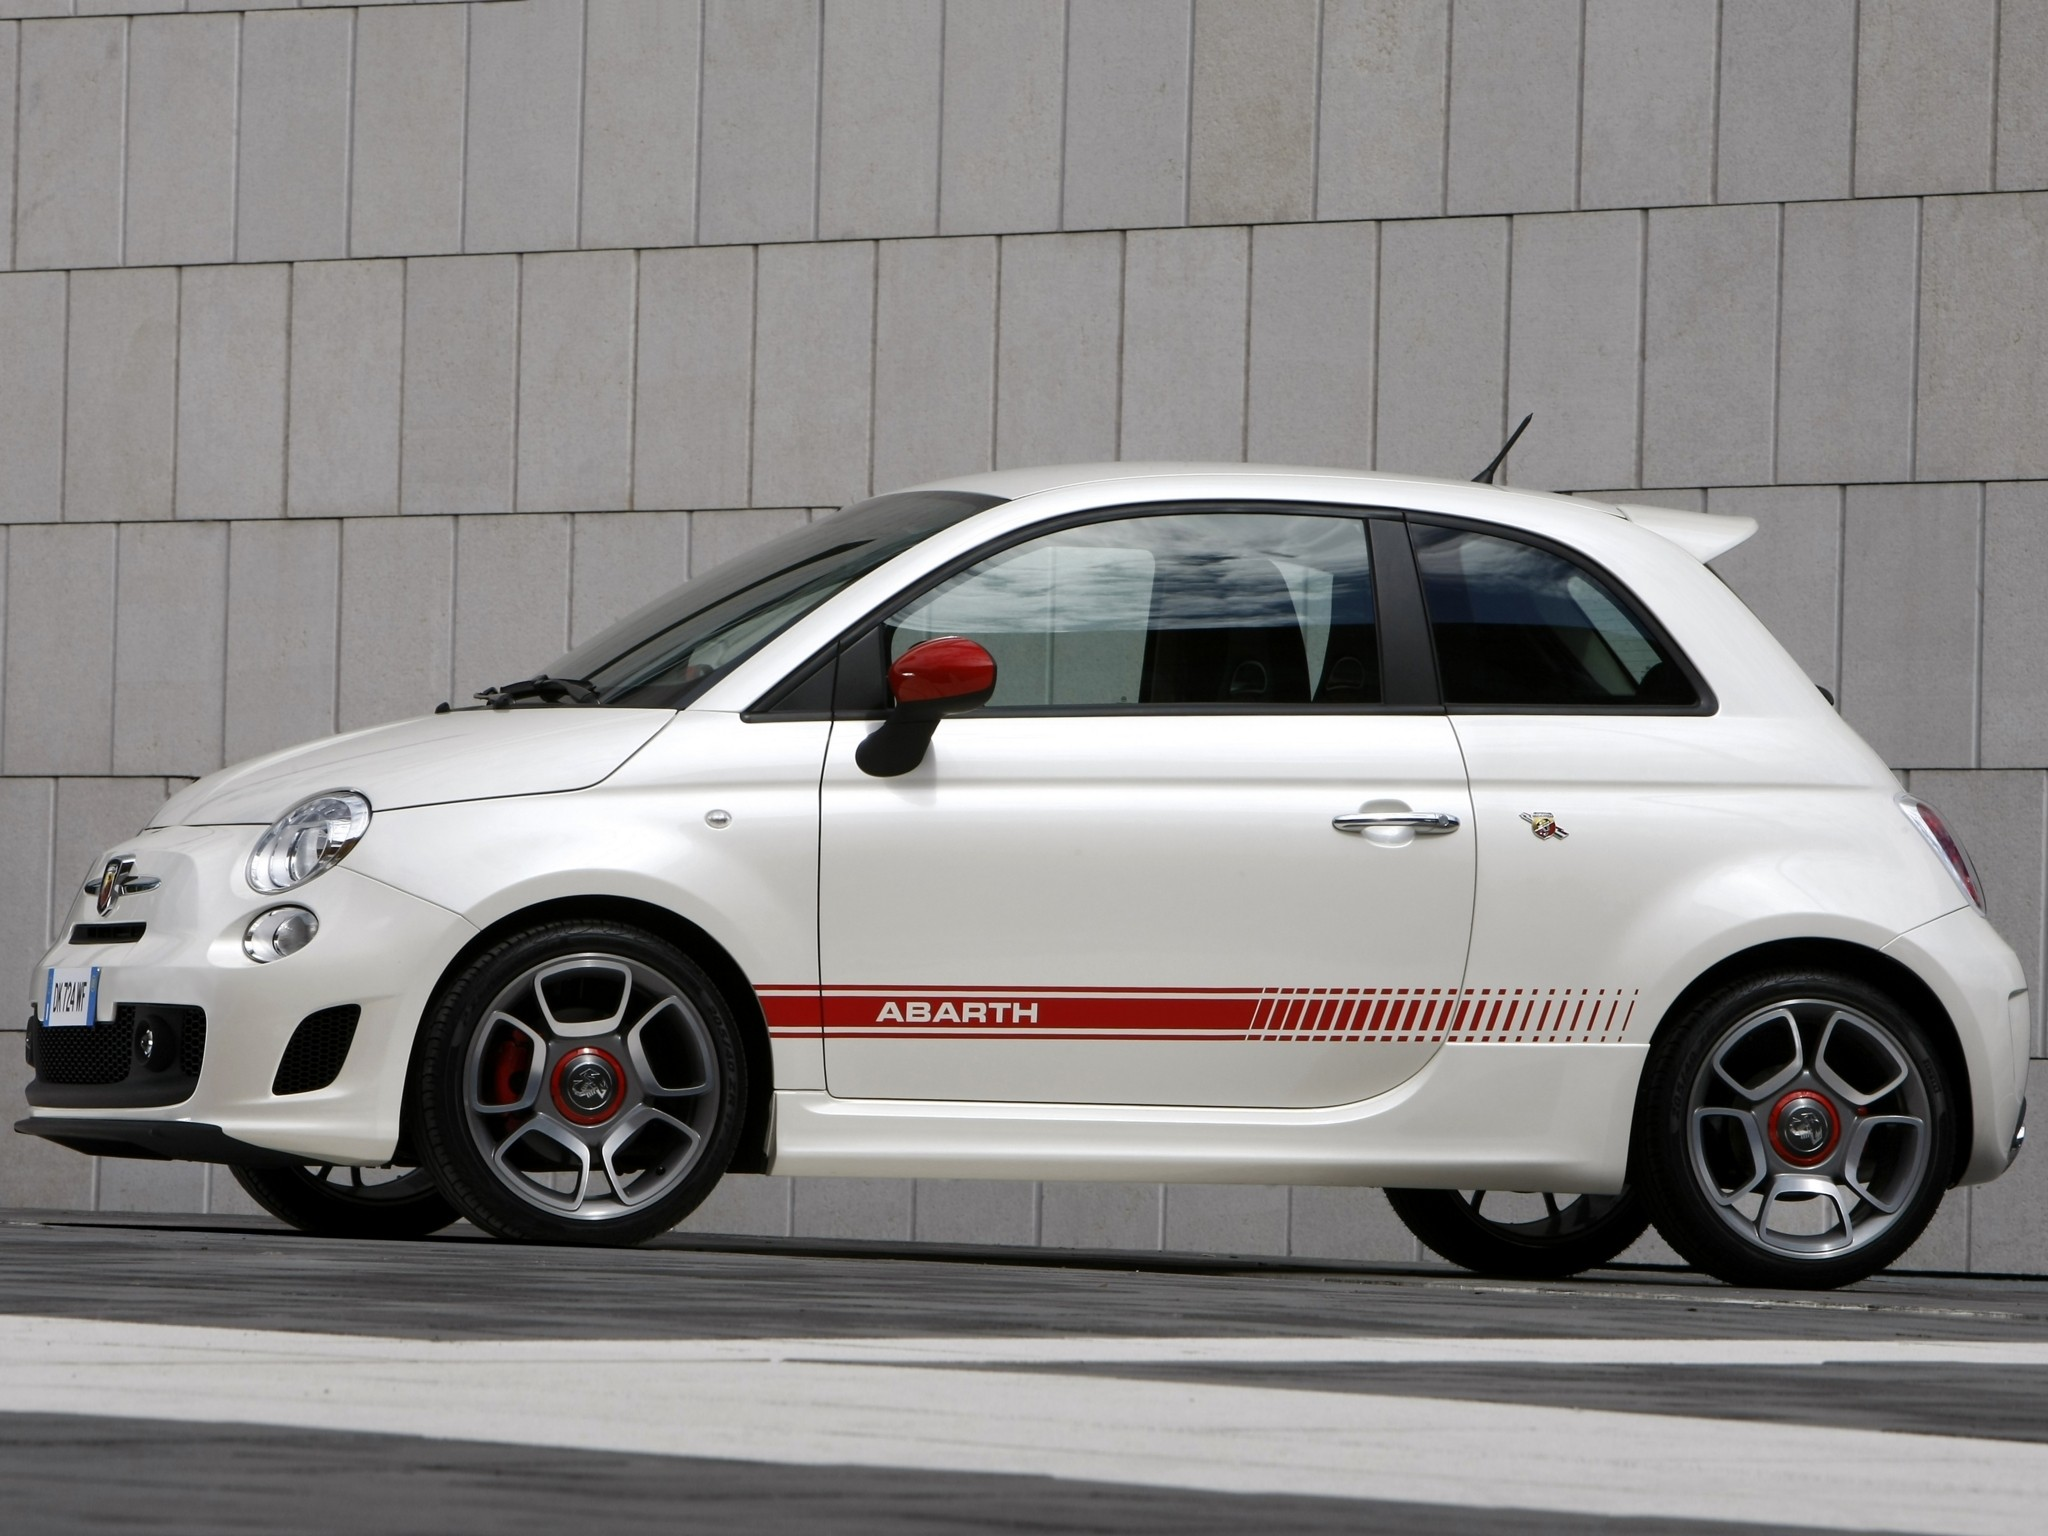 fiat abarth 500 parts with Fiat 500 Abarth 2008 on Fiat 500 Abarth 2008 besides Fiat 500 F 1967 F White as well 198680 likewise Black 124 Grille Badge further 2018 Fiat 500x Abarth Interior Wallpaper.